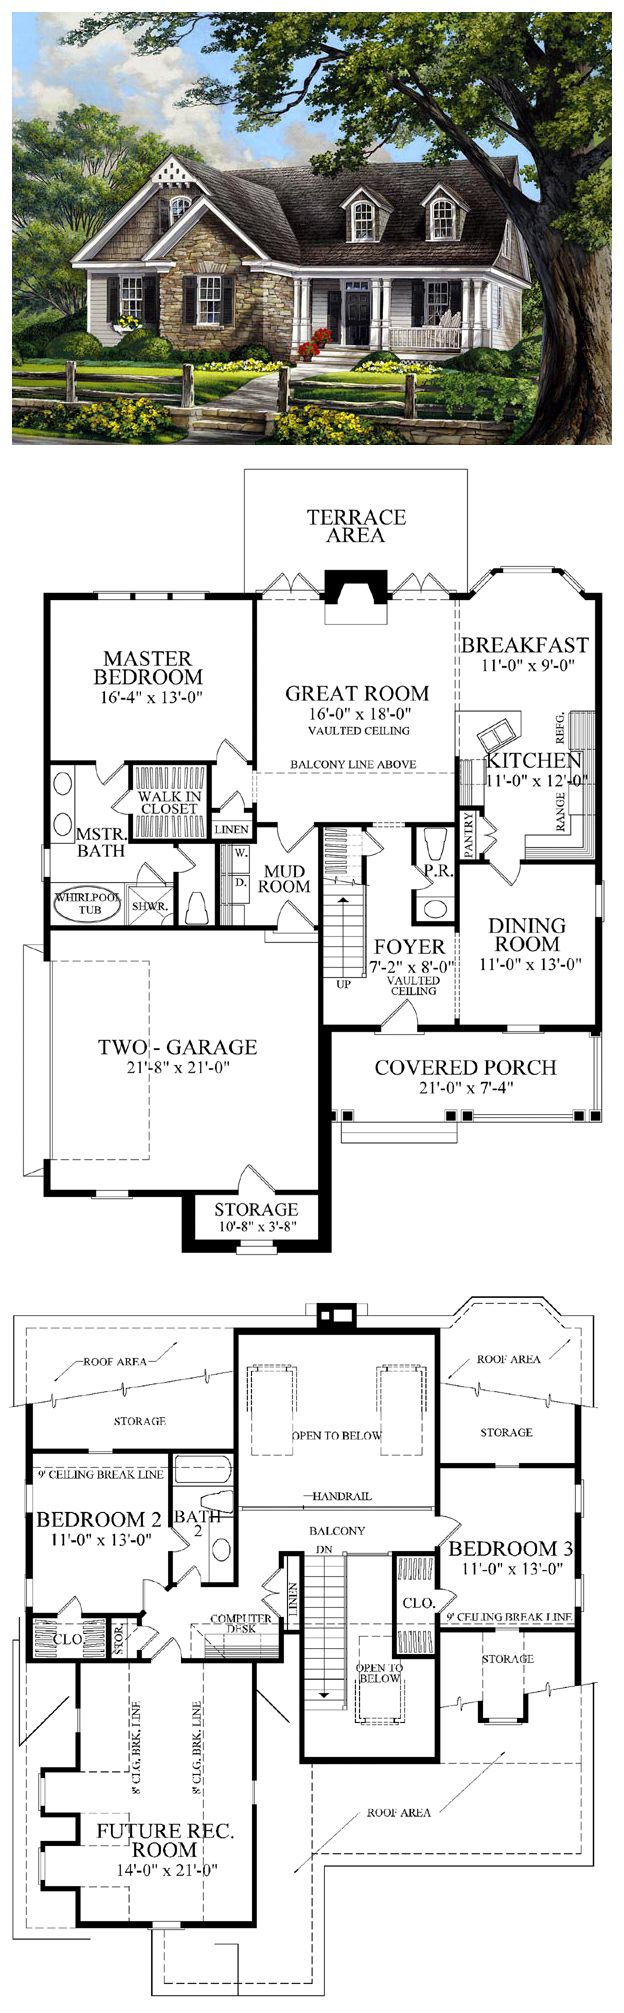 49 Best Images About French Country House Plans On